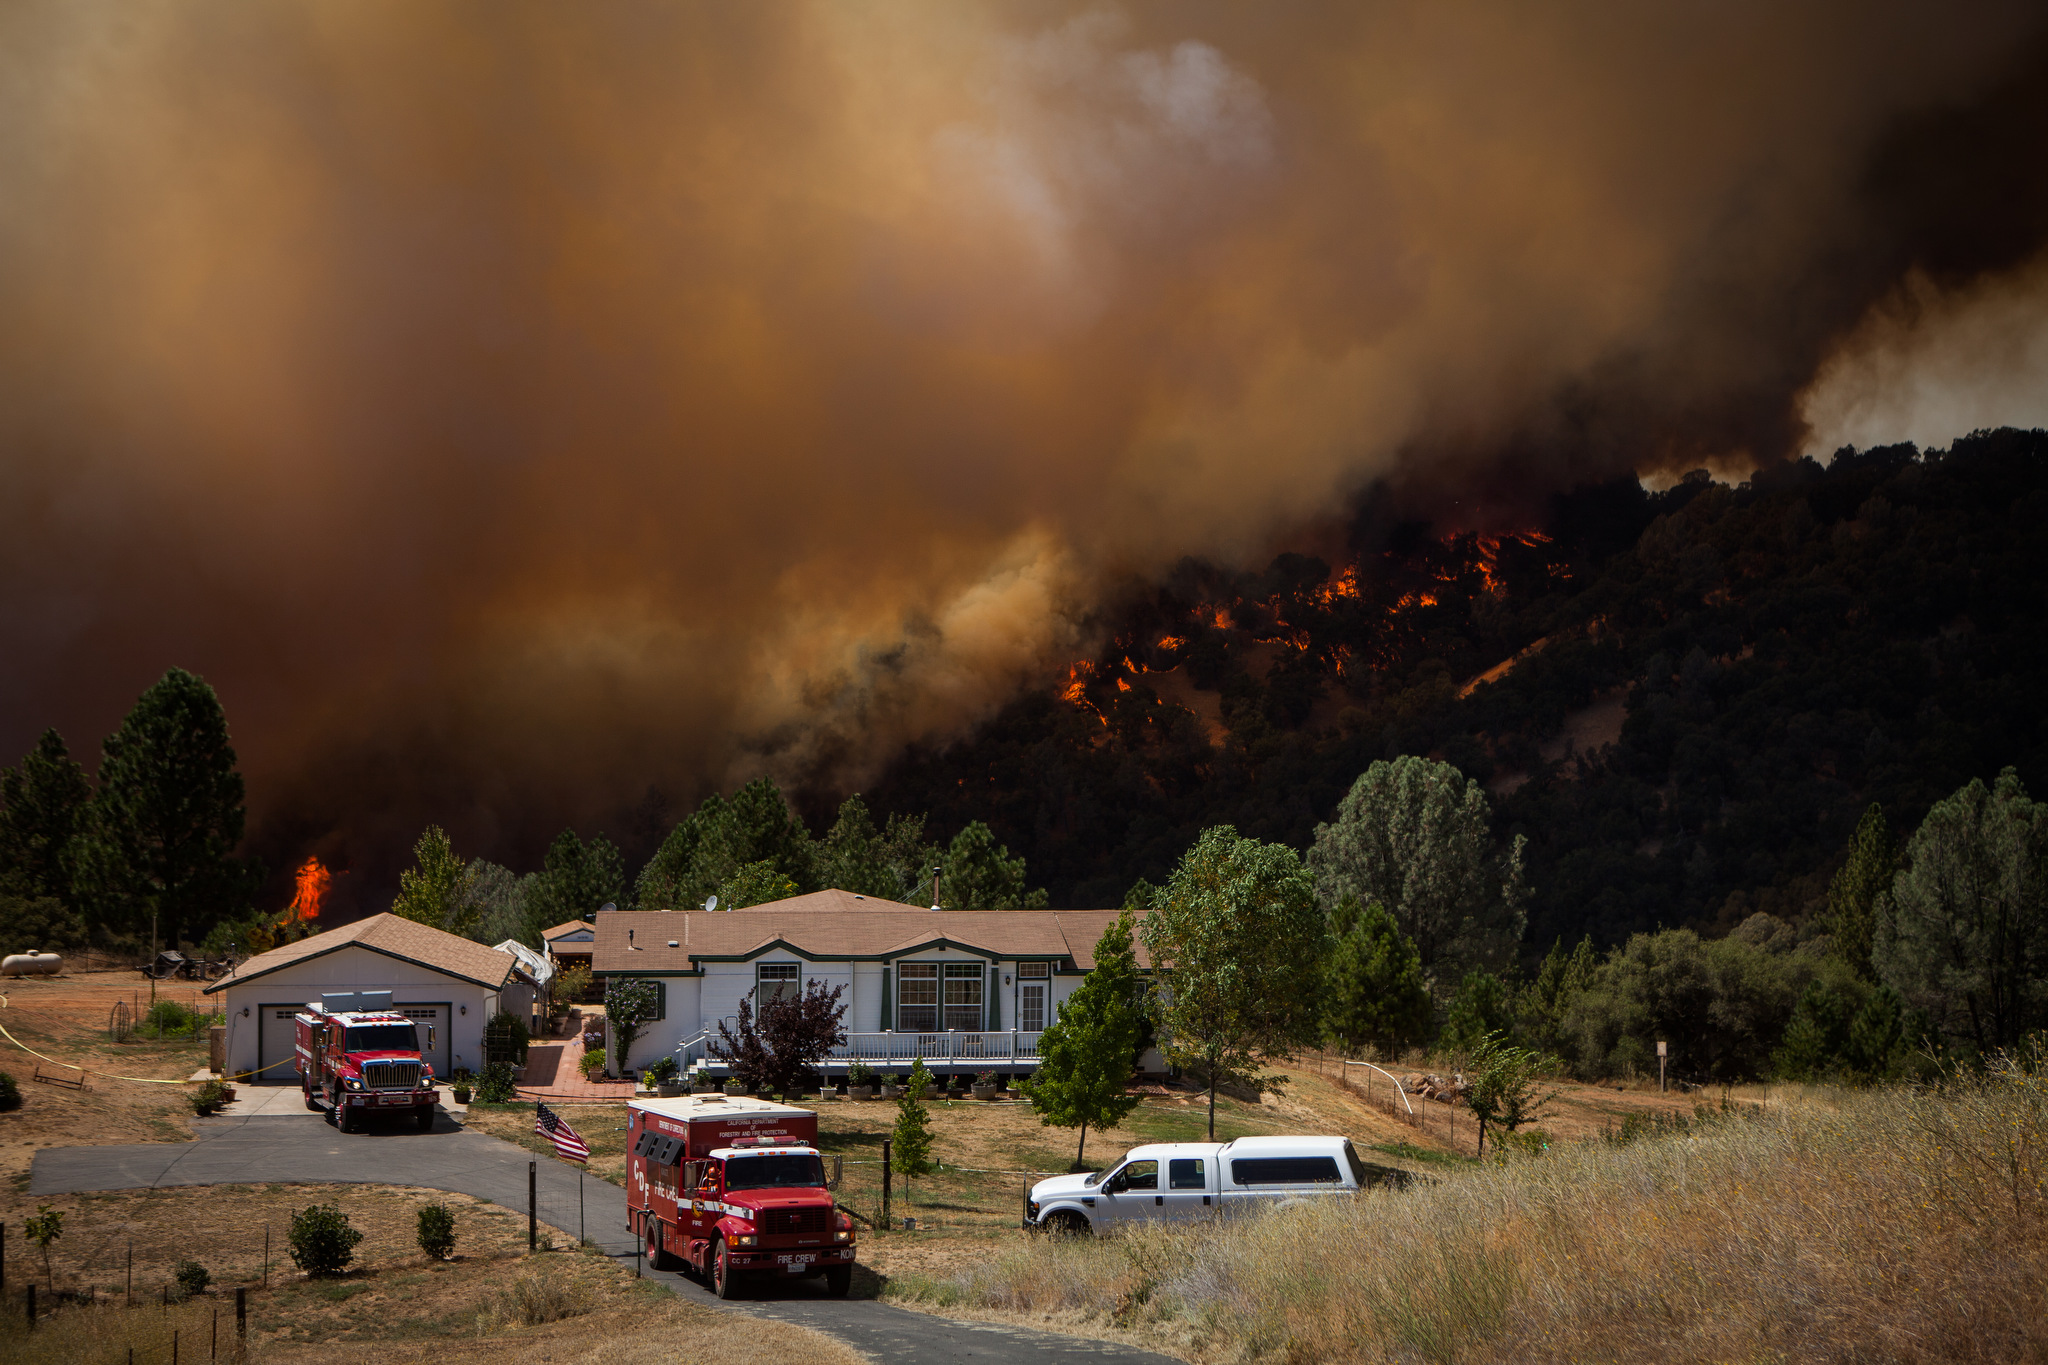 Firefighters protect an evacuated home while the Sand Fire burns behind it near Plymouth, California, July 26, 2014. 